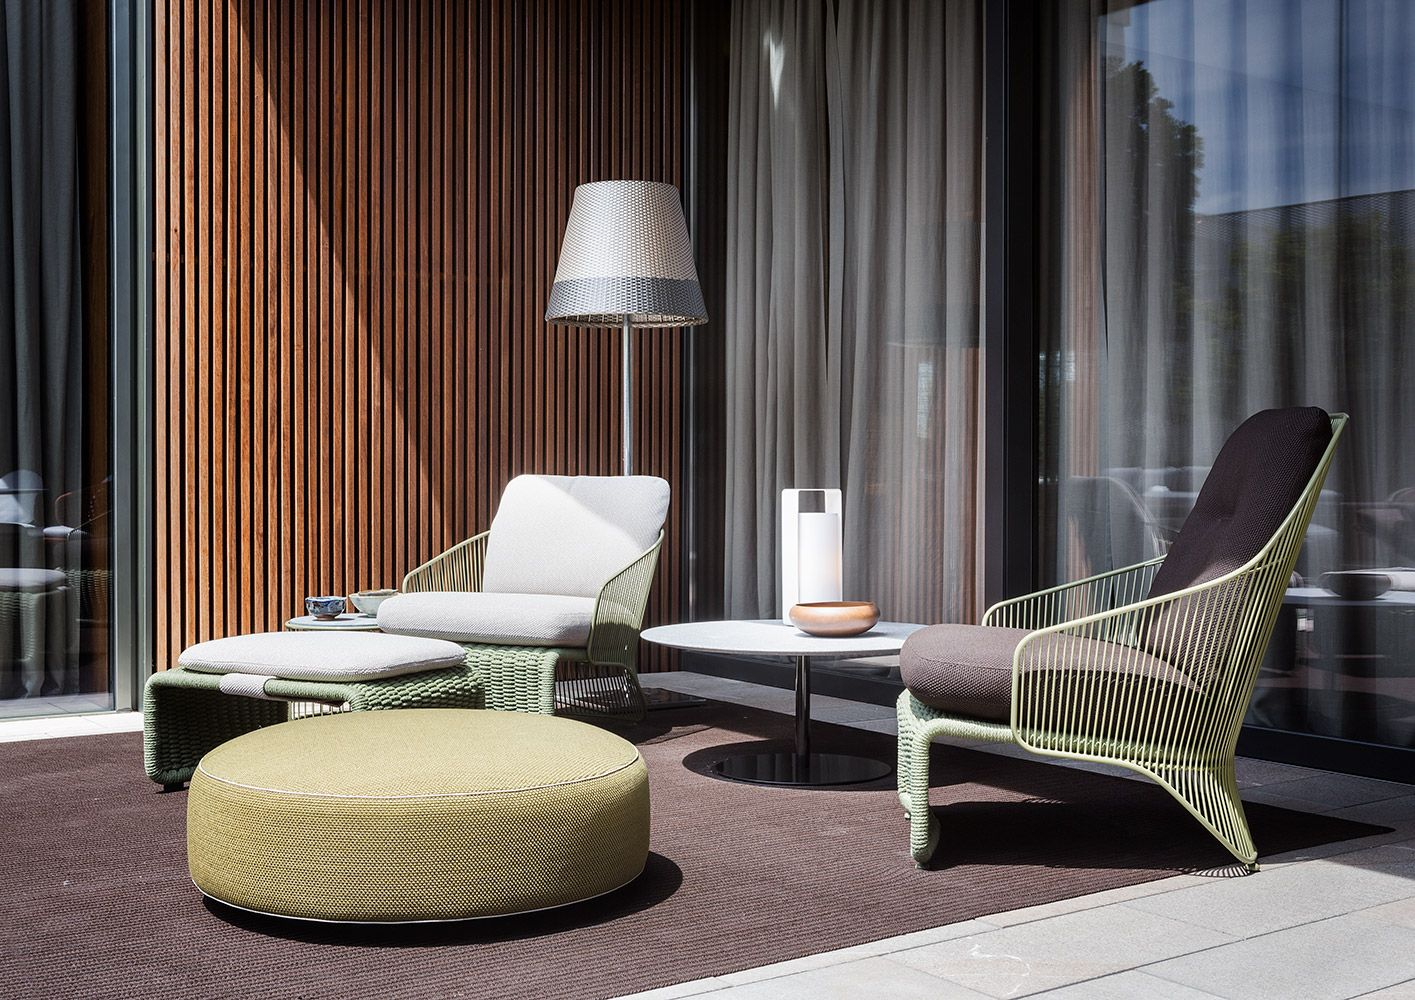 Urban Sofa Barneveld Minotti Outdoor Collection Colette